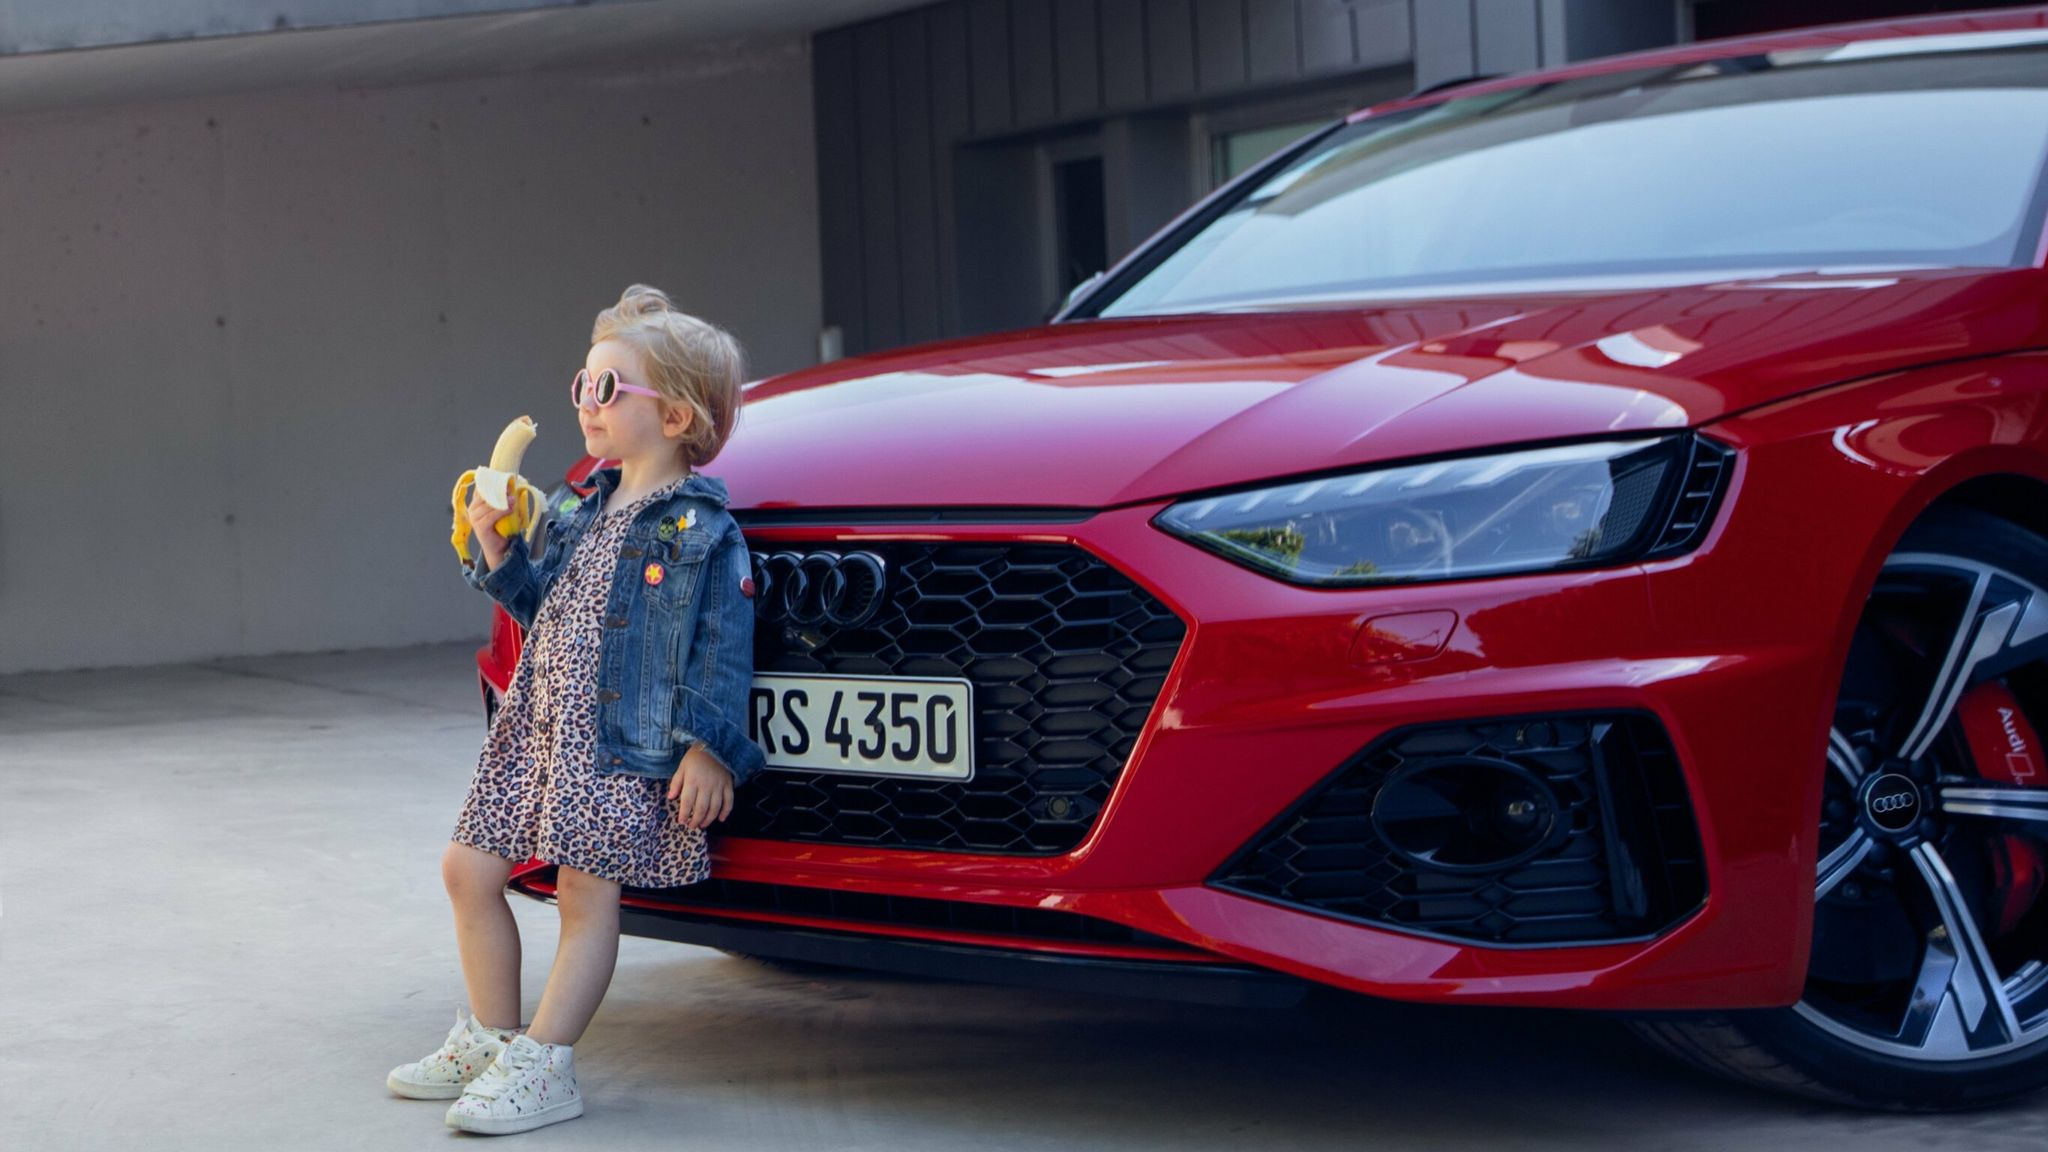 Audi apologises for 'insensitive' advert showing little girl eating a banana  | Business News | Sky News